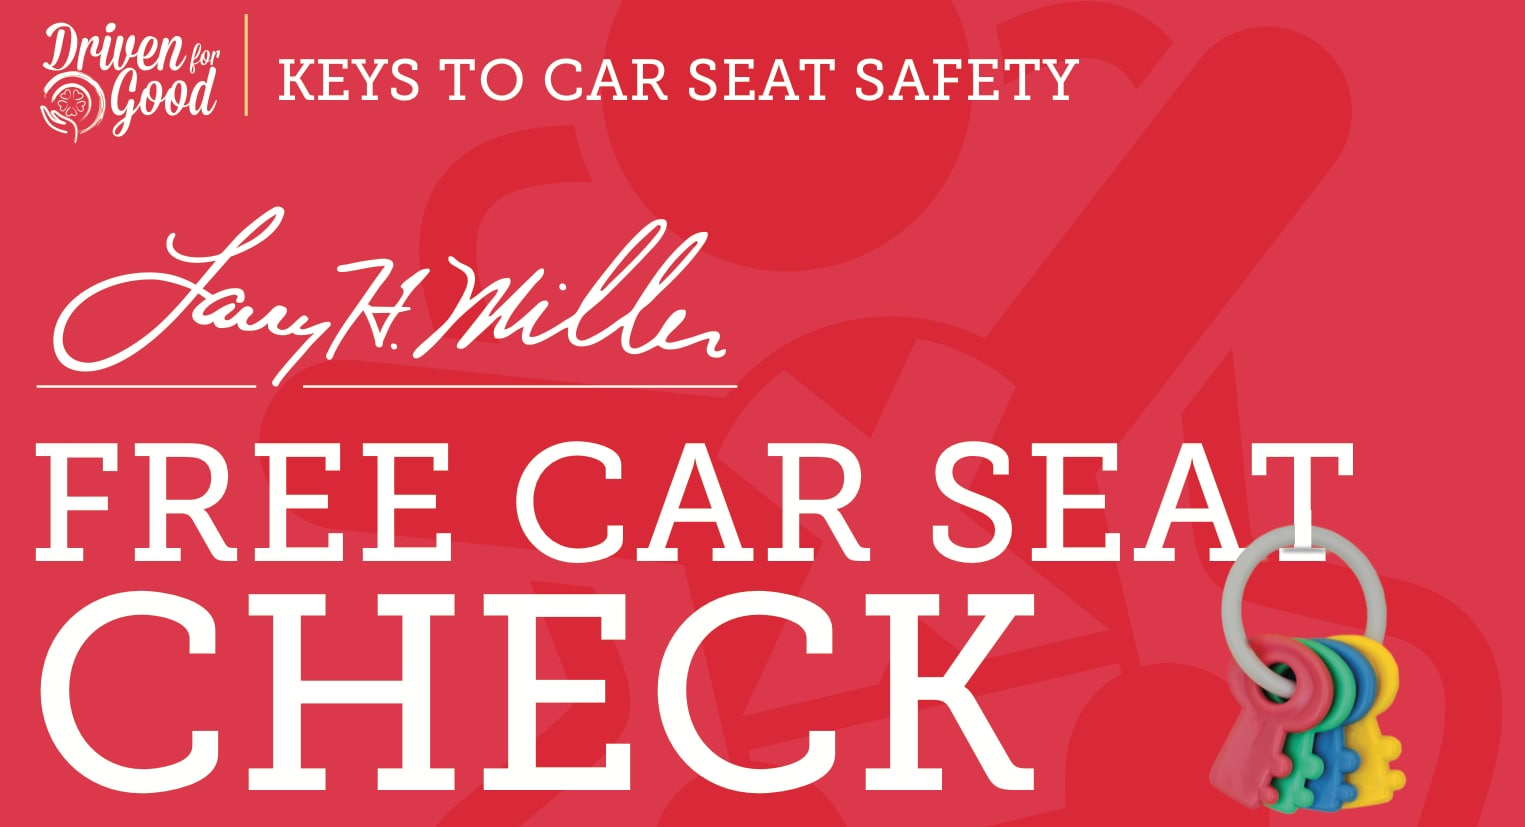 LHM Free Car Seat Check from Your Local Fire & Police Depts